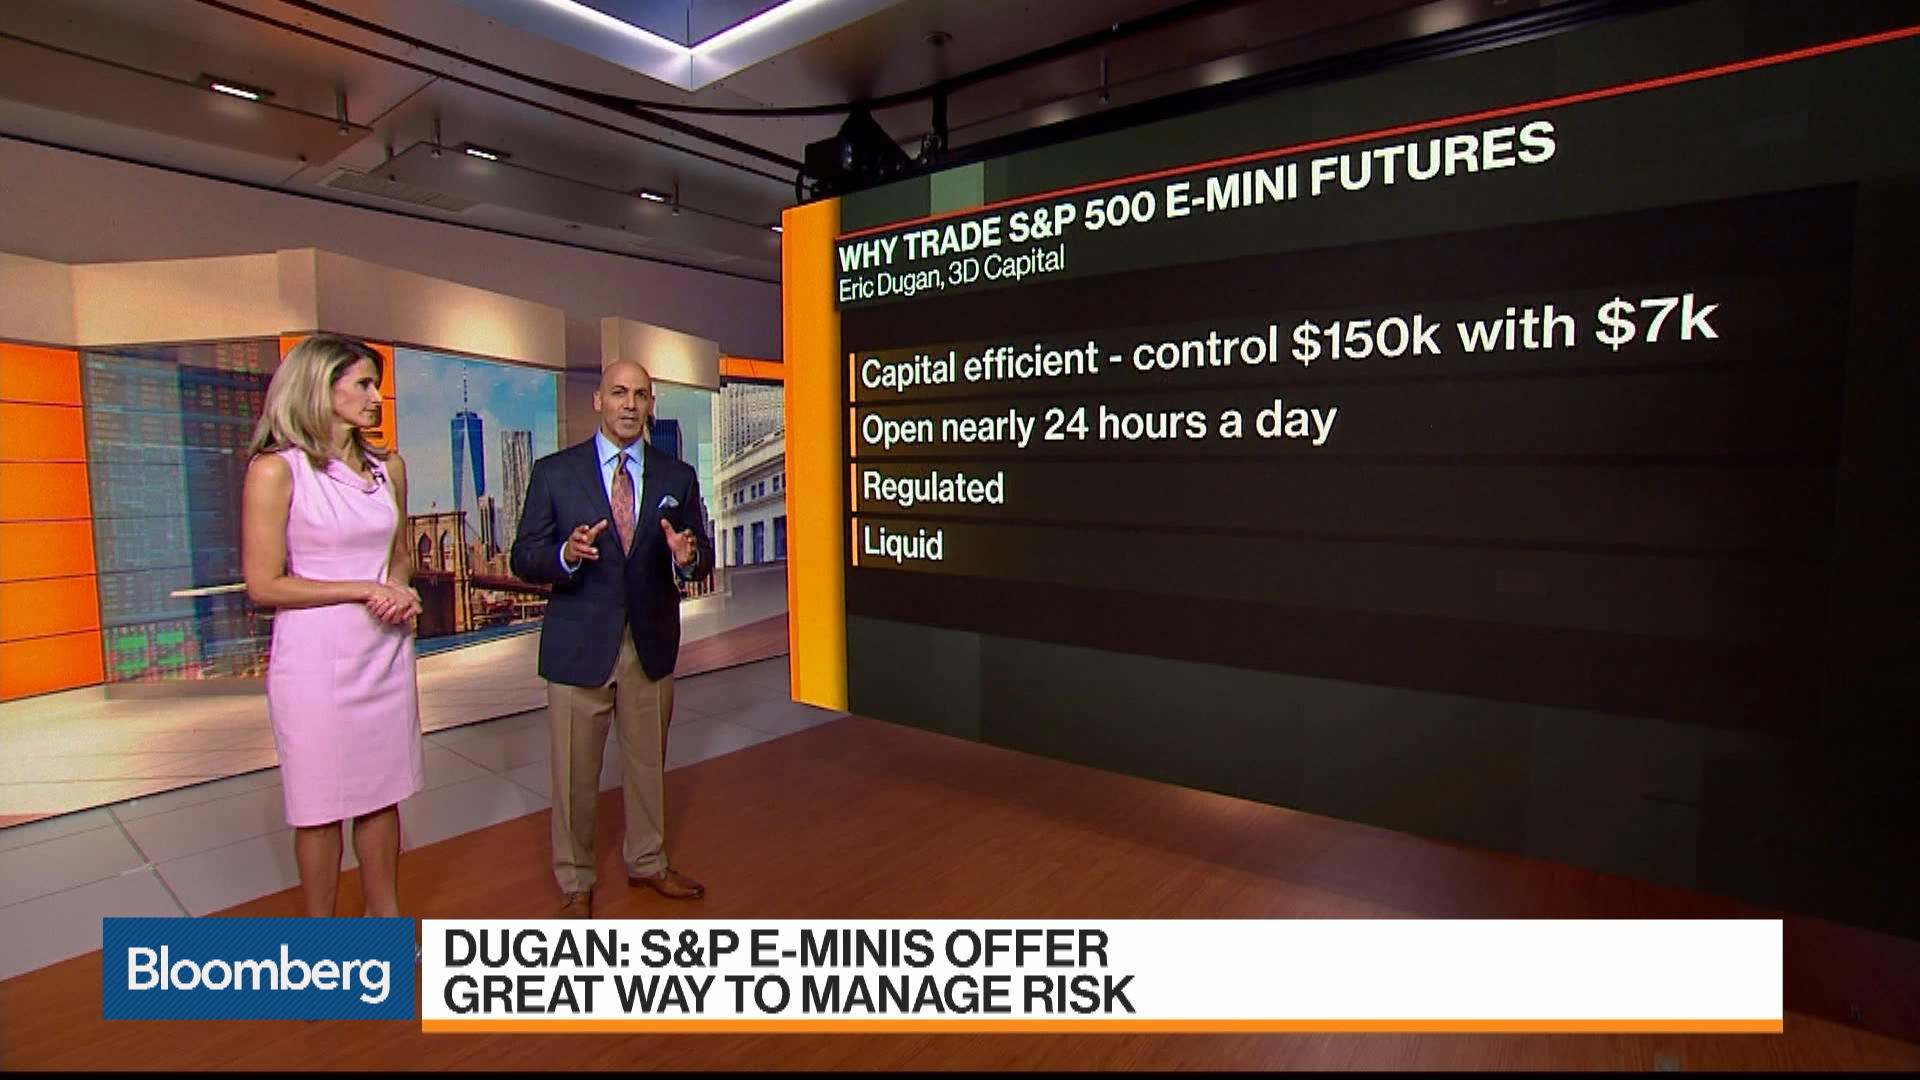 S&P E-Mini Futures Offer Great Way to Manage Risk: Eric Dugan